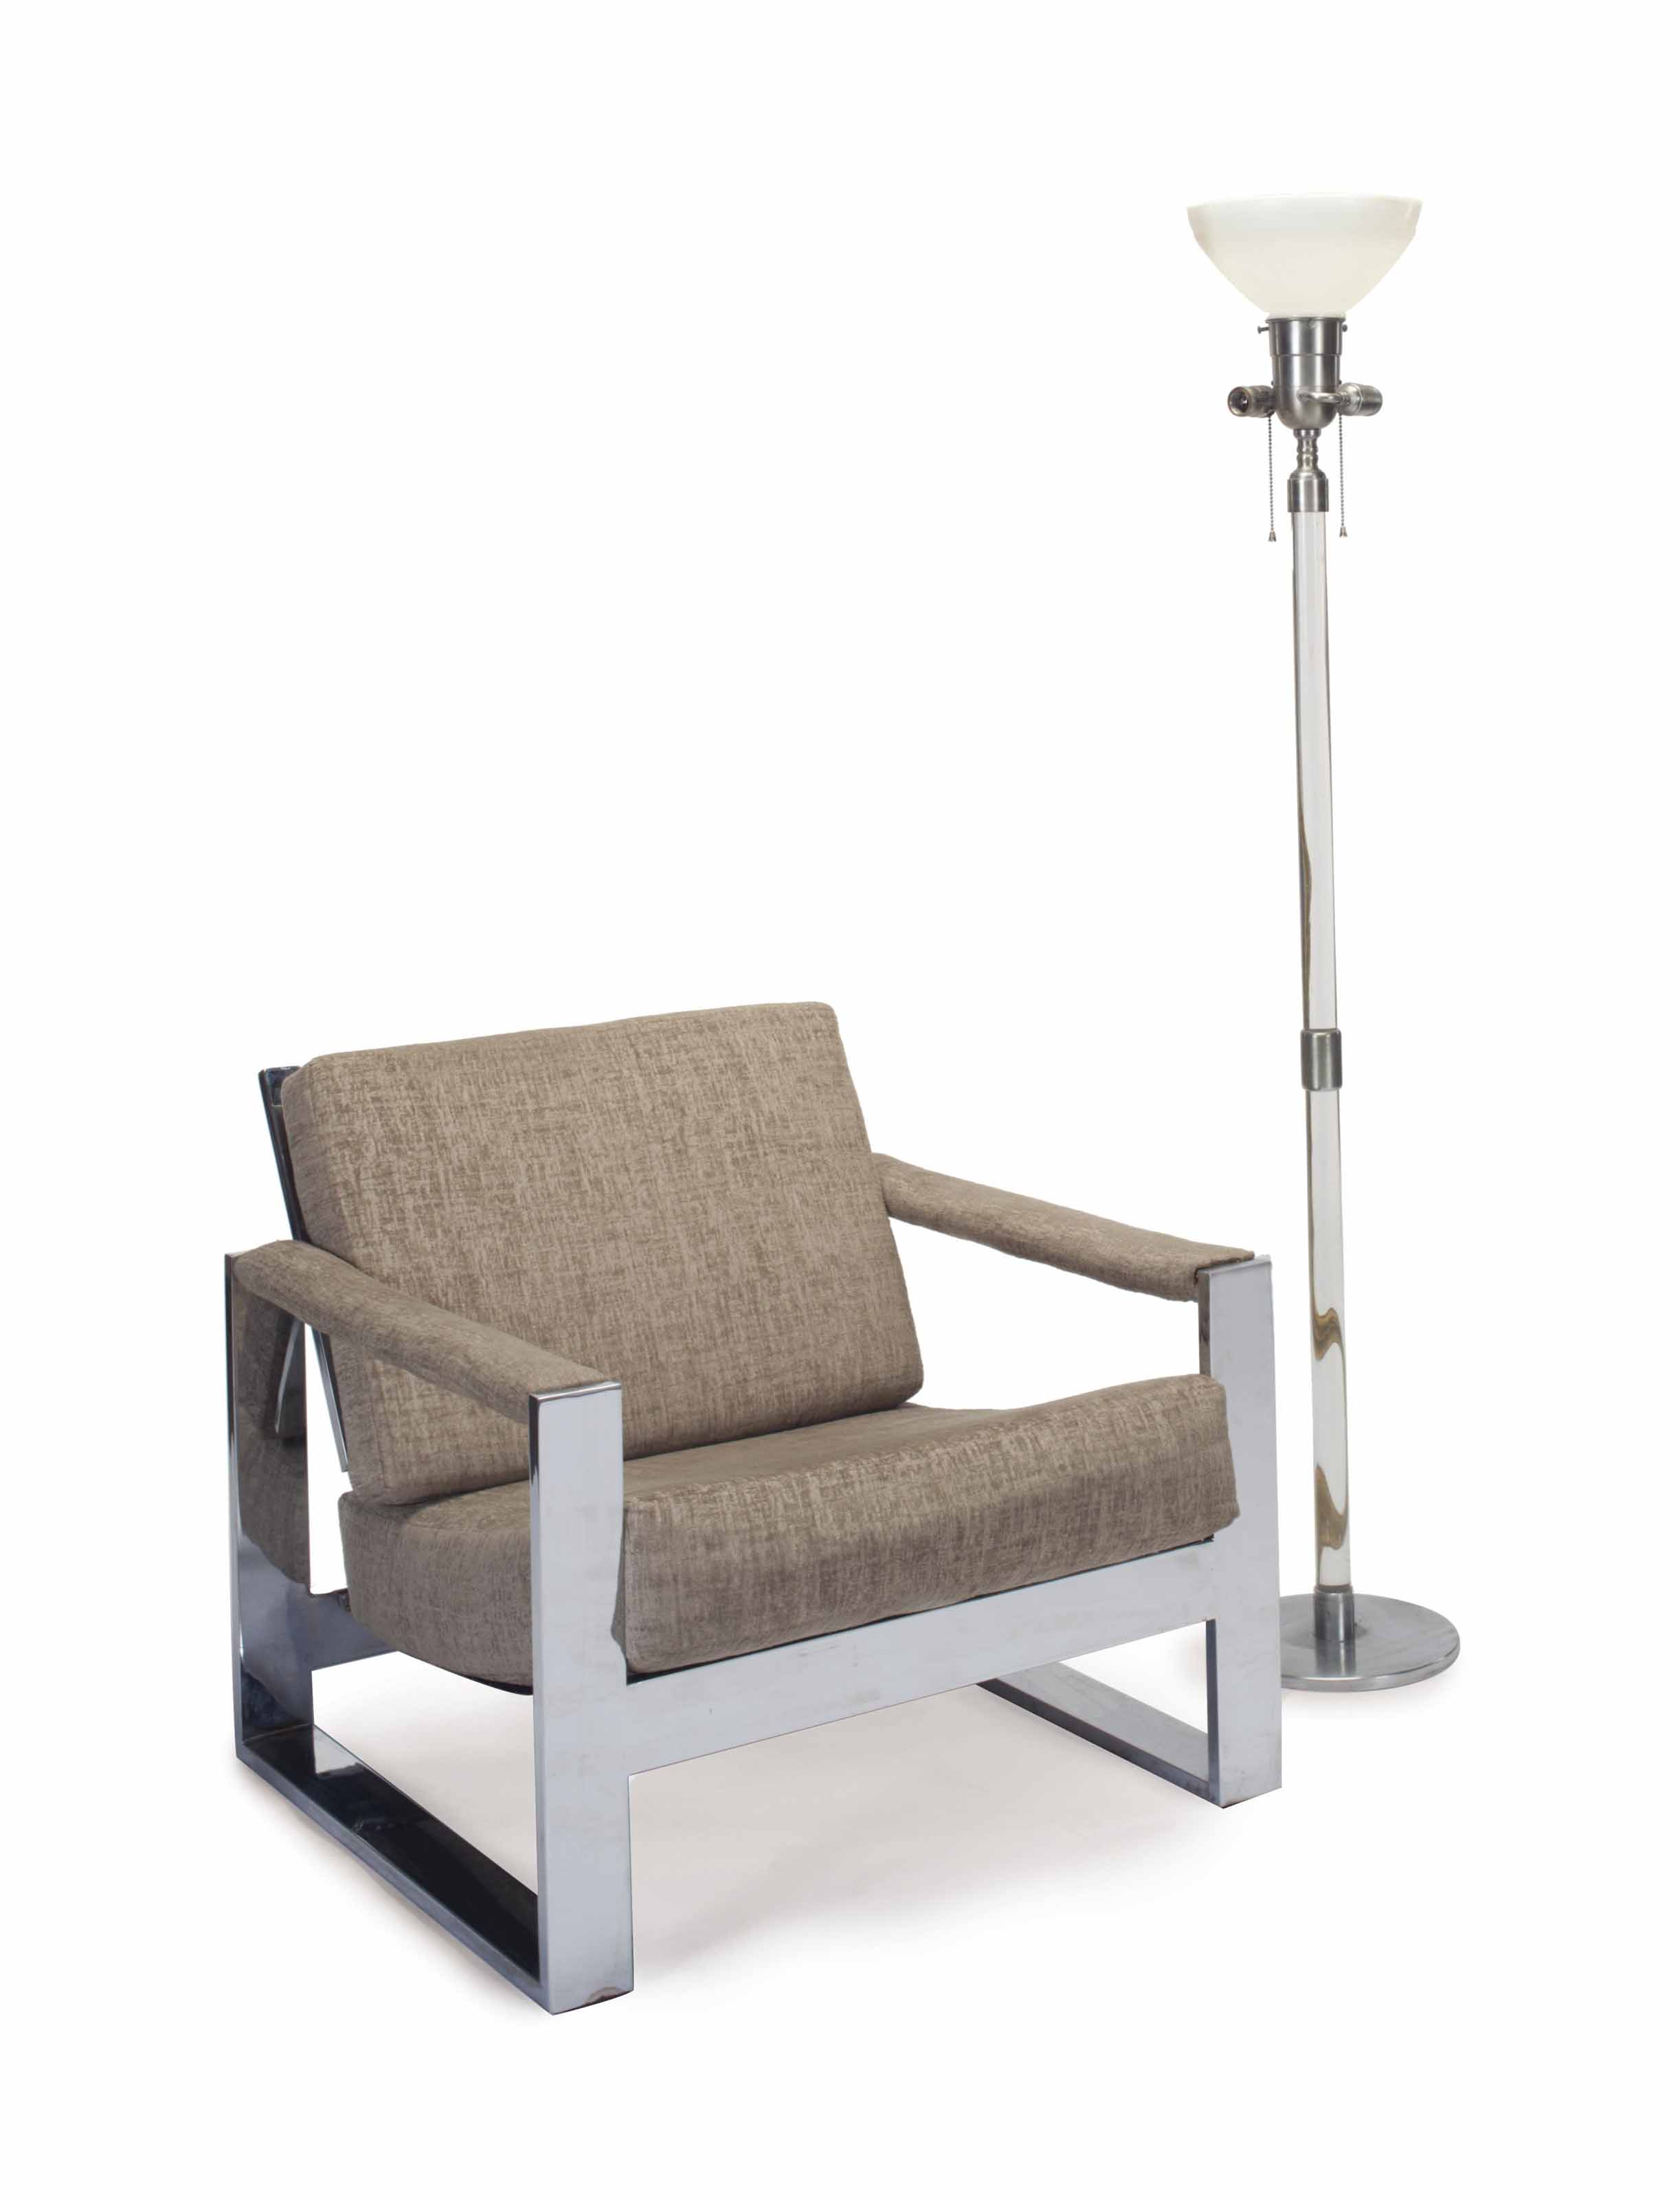 A CHROMED METAL AND UPHOLSTERED EASY CHAIR, AND A STEEL AND COLORLESS GLASS FLOOR LAMP,